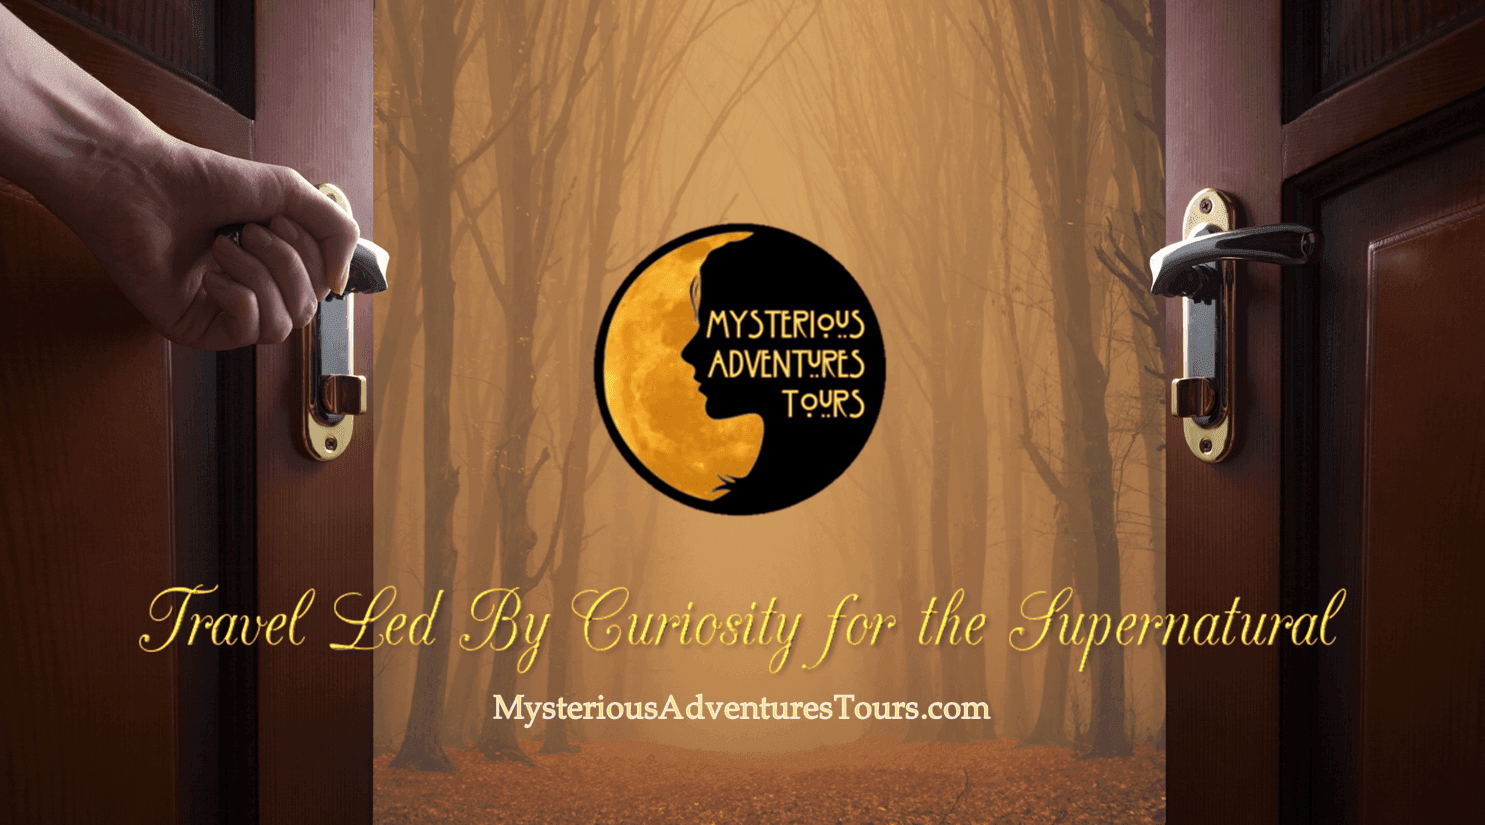 Mysterious Adventures Tours Takes Curious Explorers to the Most Supernatural Places in the World!